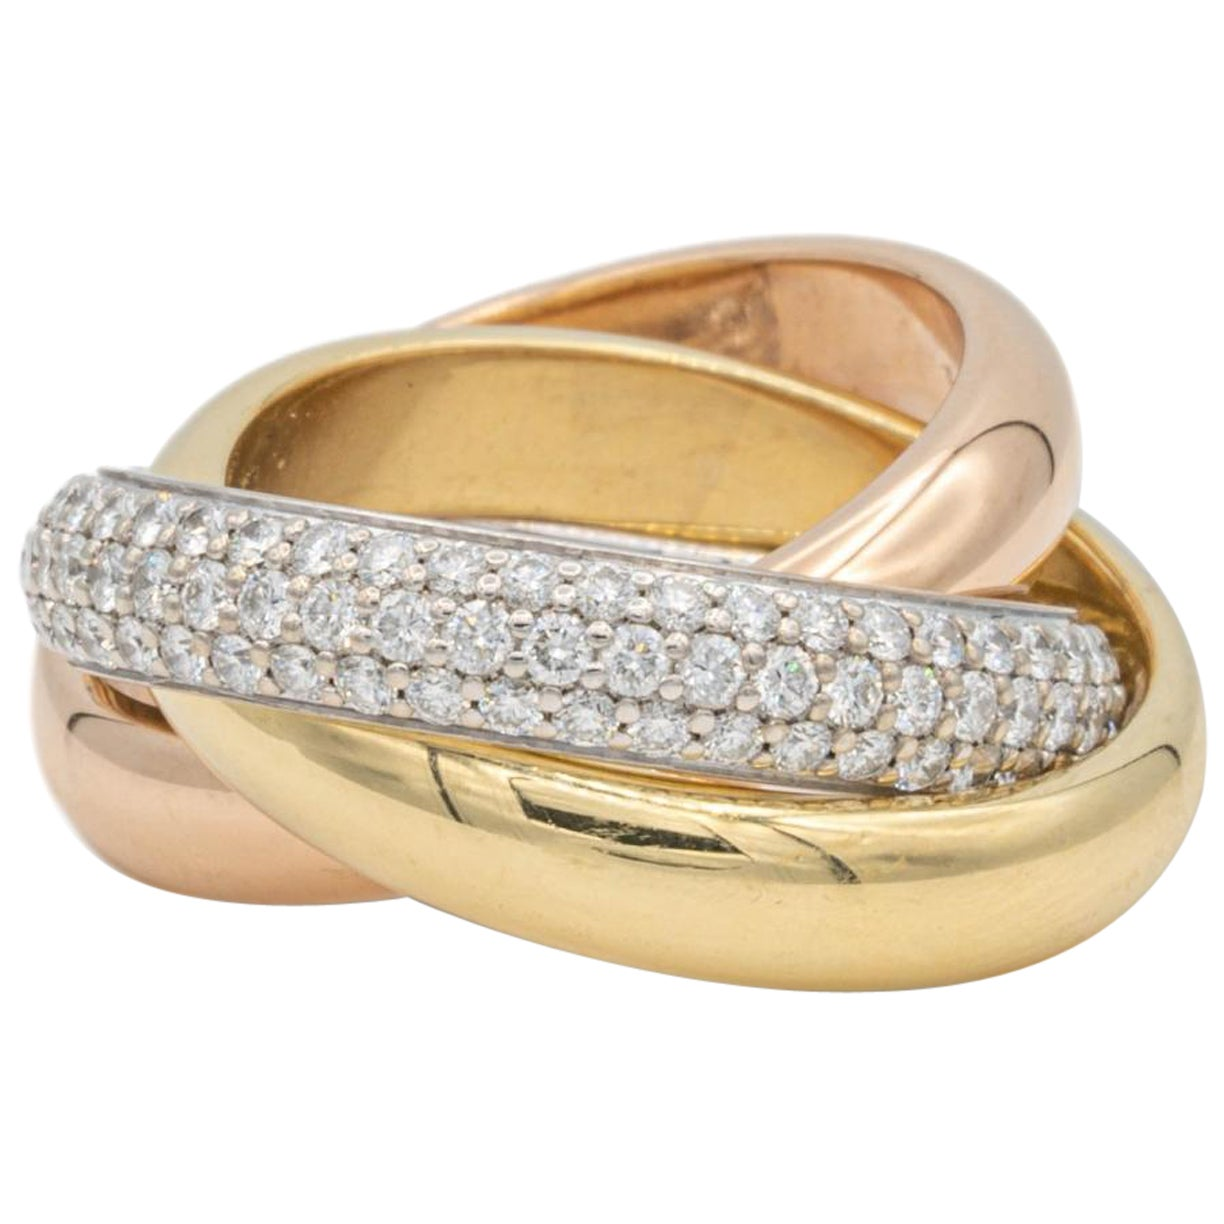 Cartier Classic Trinity Pave Rolling Diamond Ring 18K White Yellow Rose